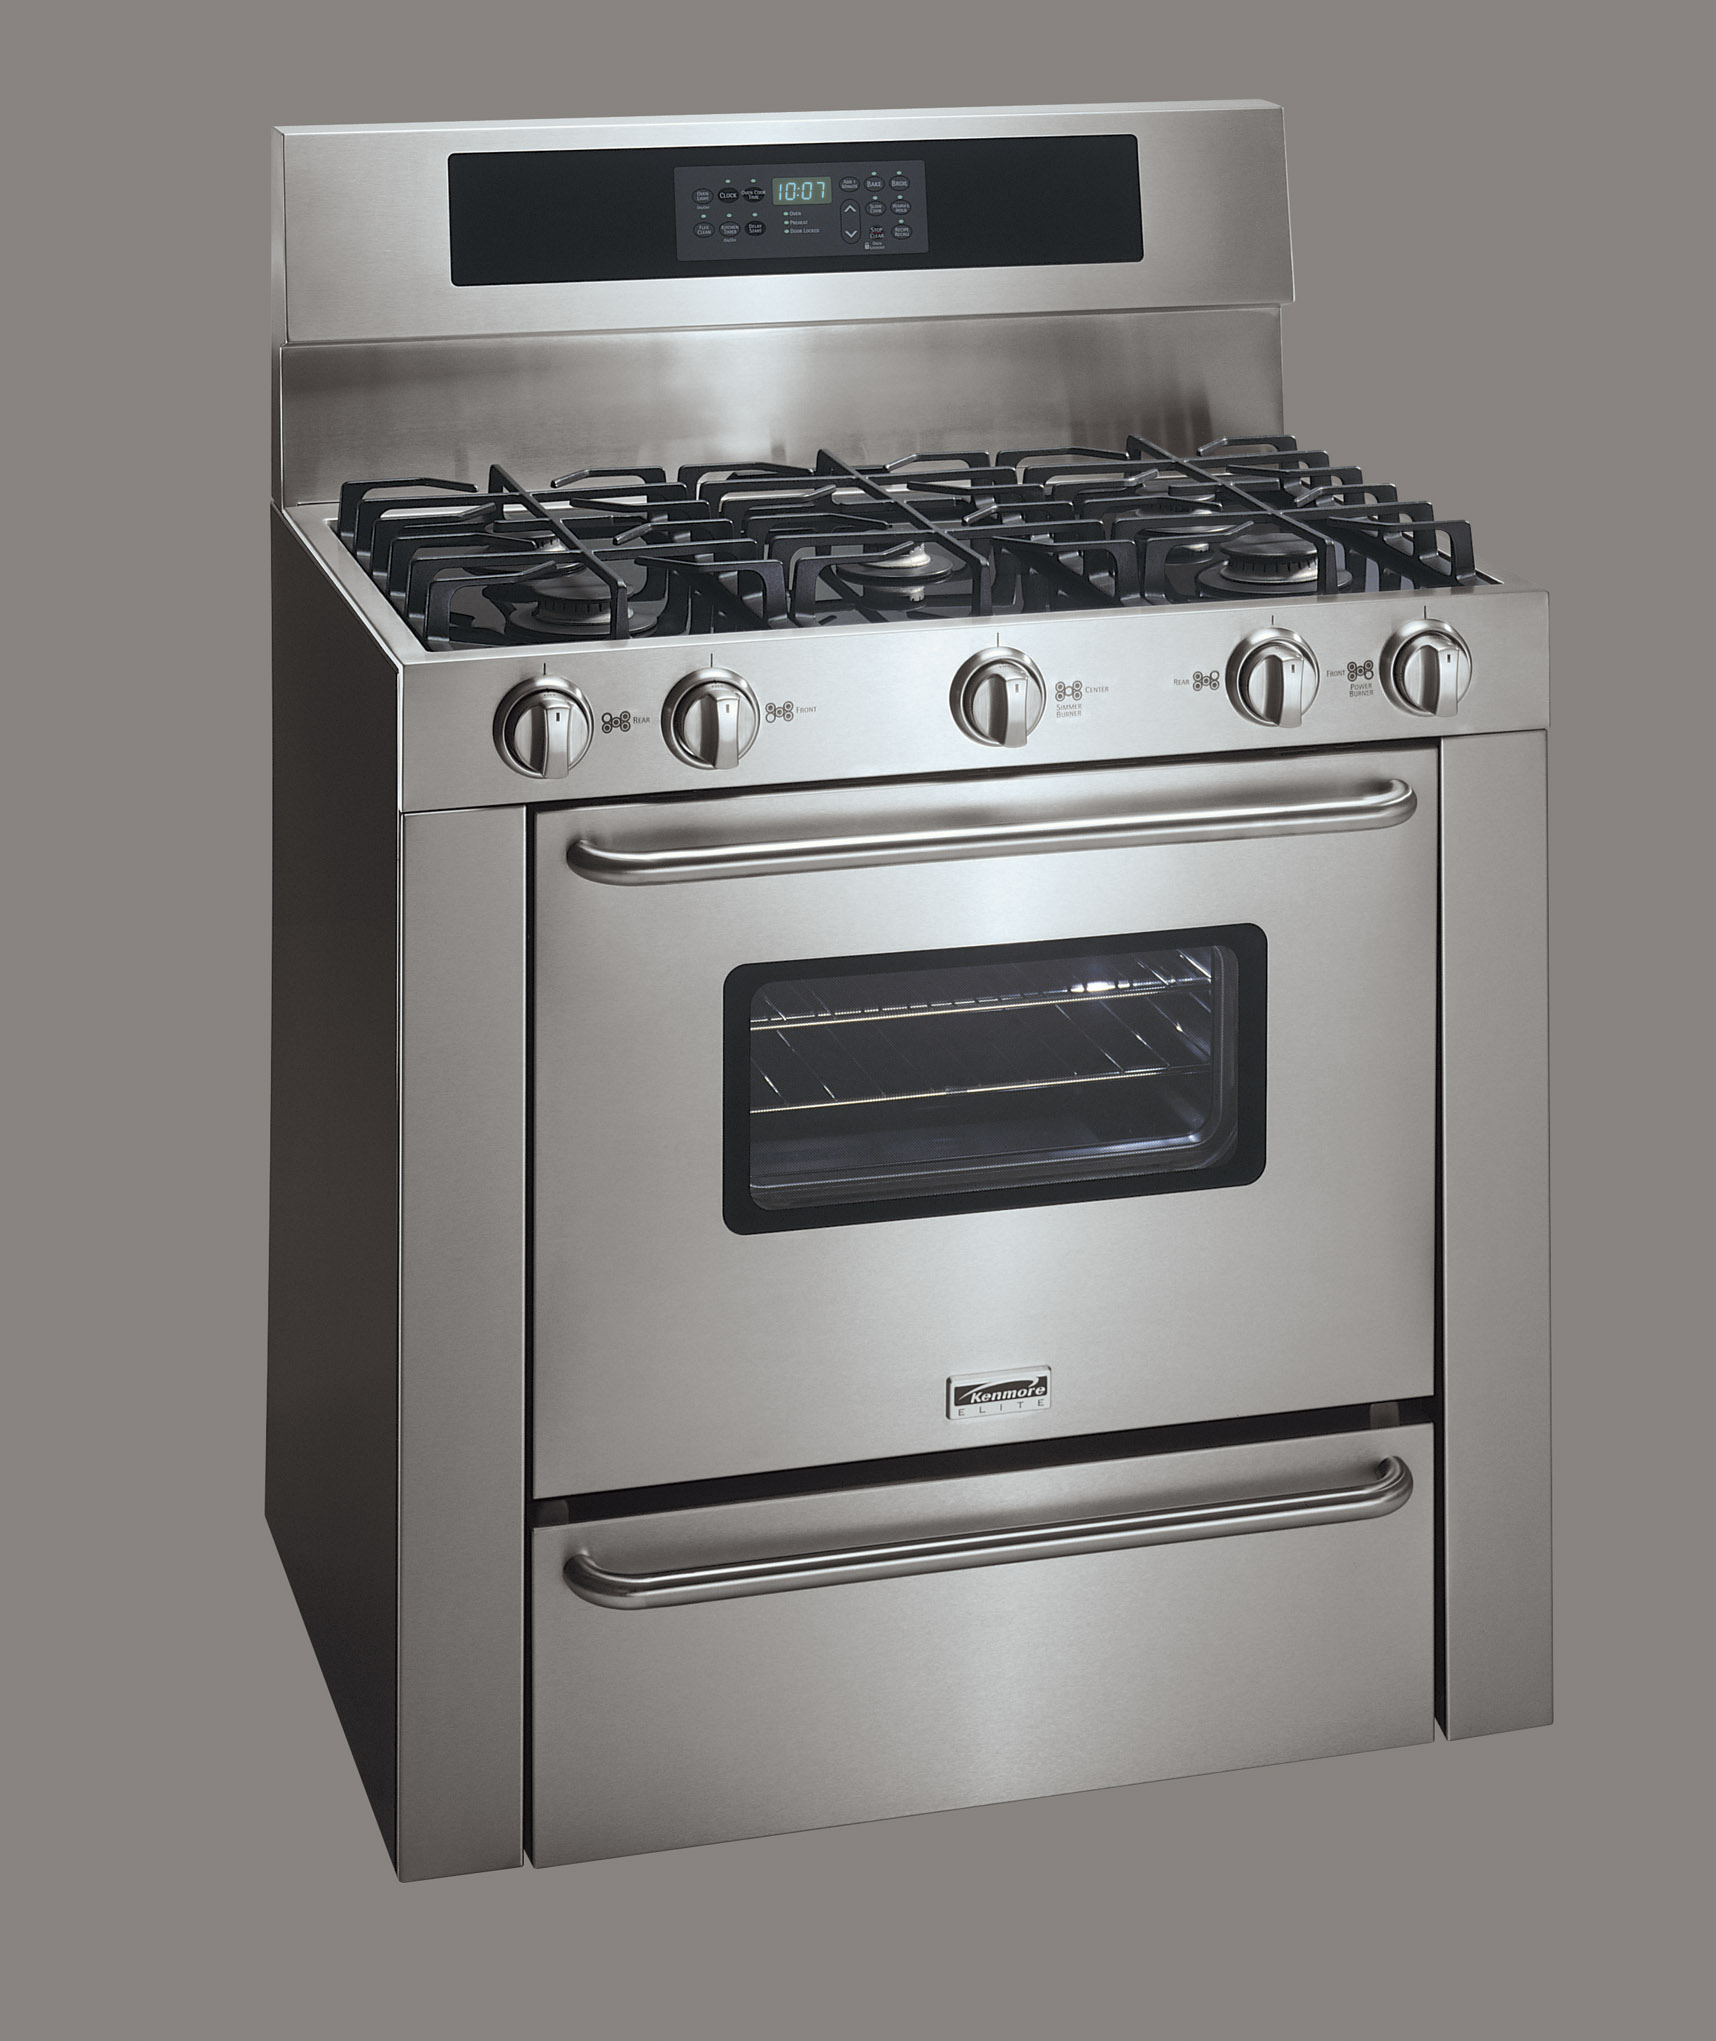 Kenmore Range/Stove/Oven Model 790.75403501 Parts